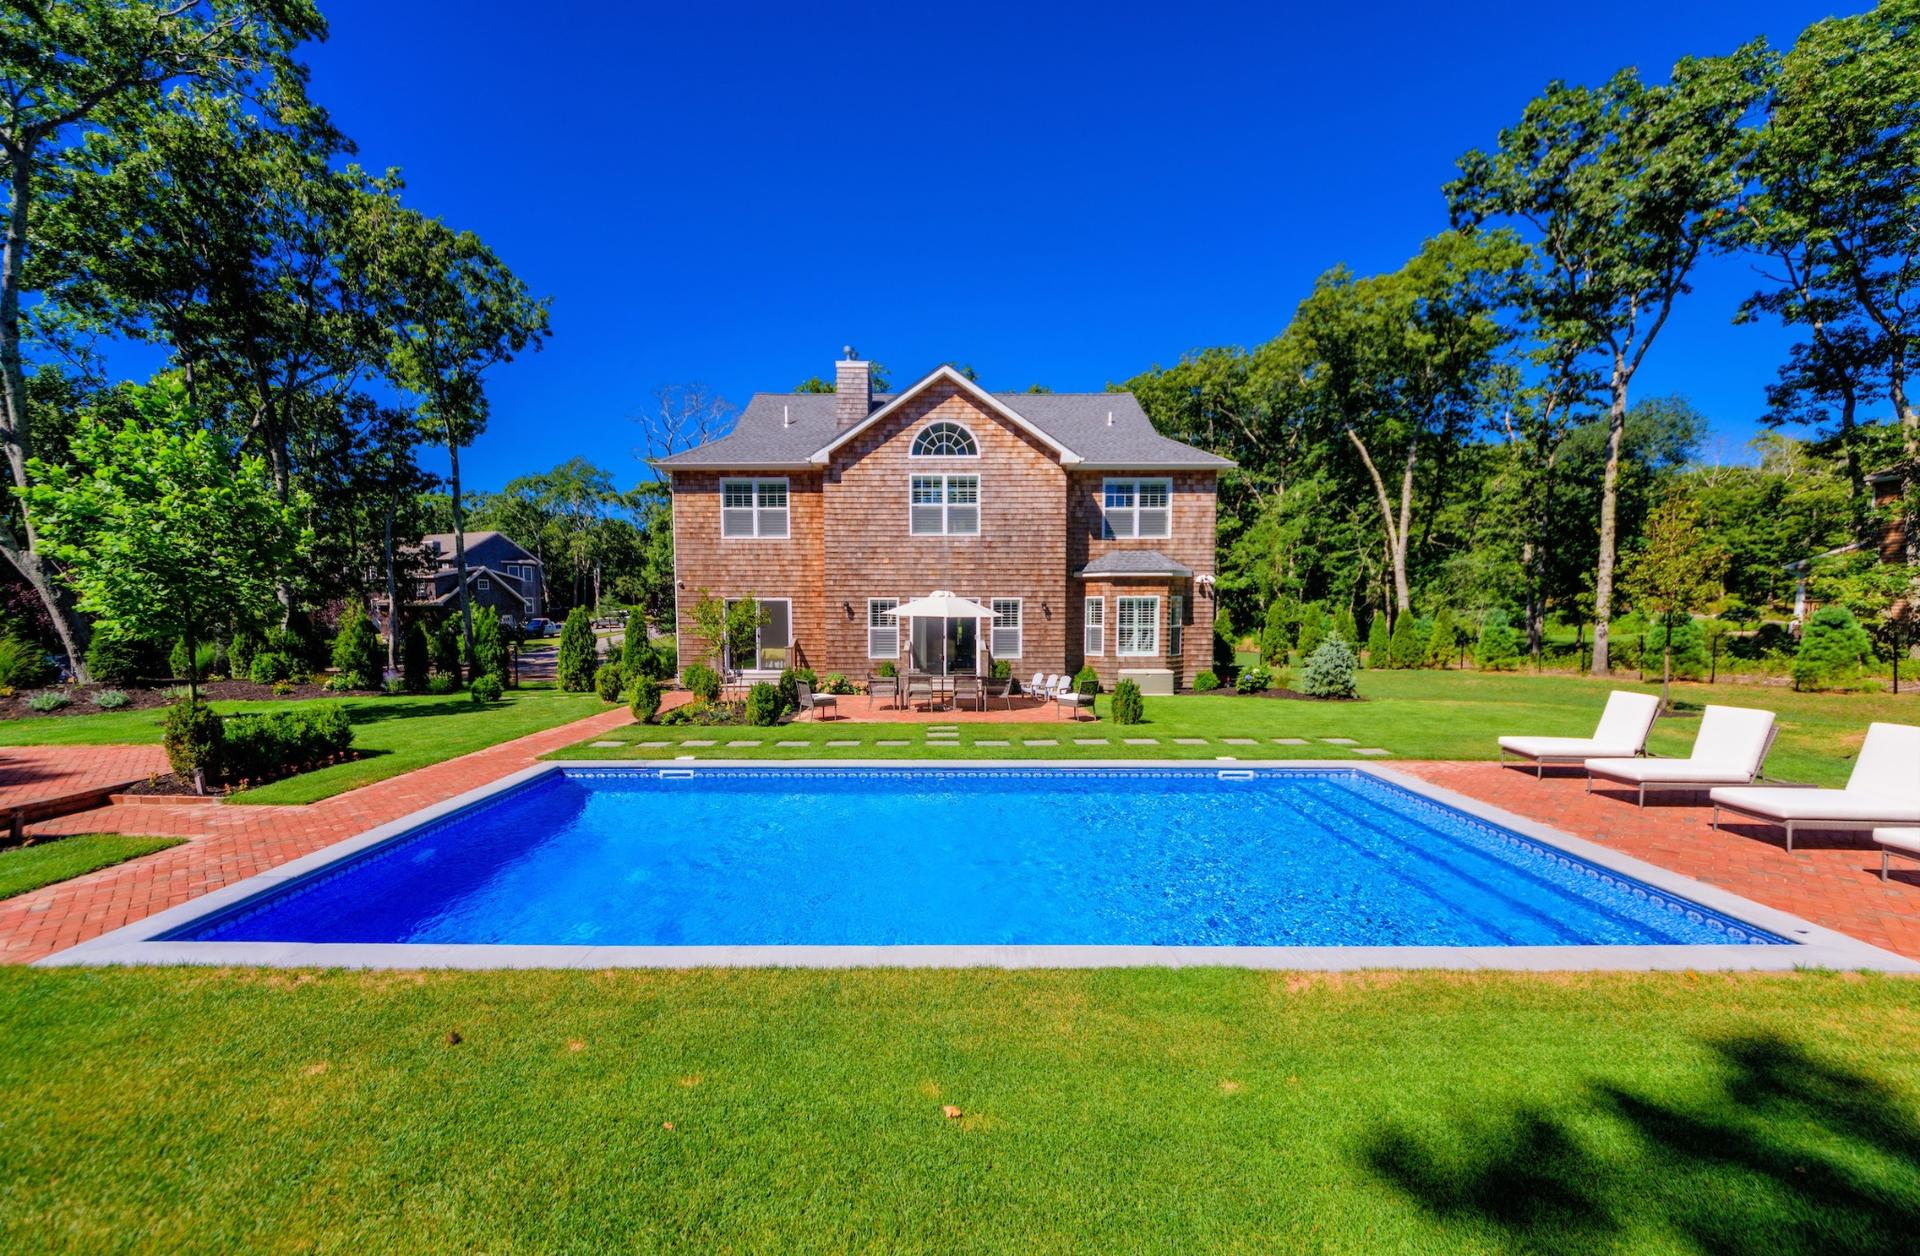 Additional photo for property listing at Exquisite Newly Constructed Southampton Home  Southampton, Nueva York